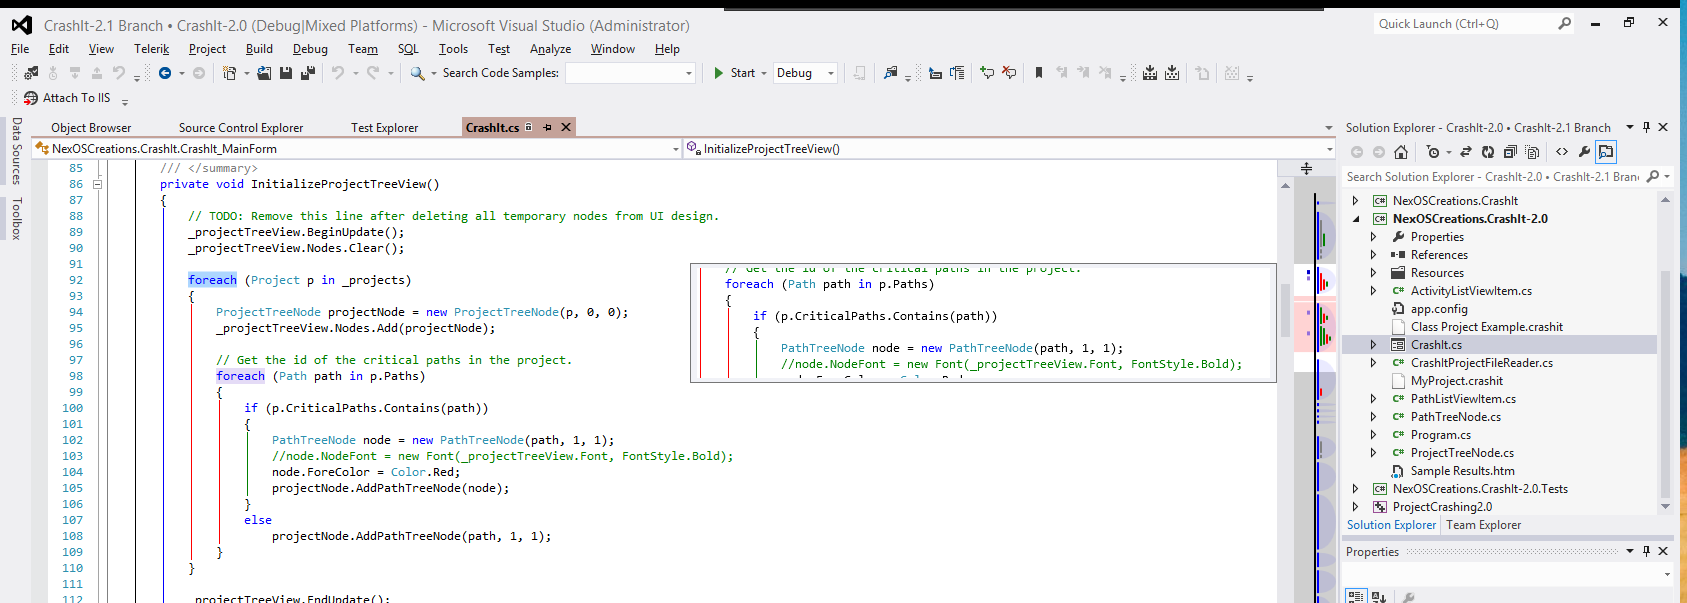 A partial full screen view of AllMargins 2012 running in Visual Studio 2012 with the Light theme.